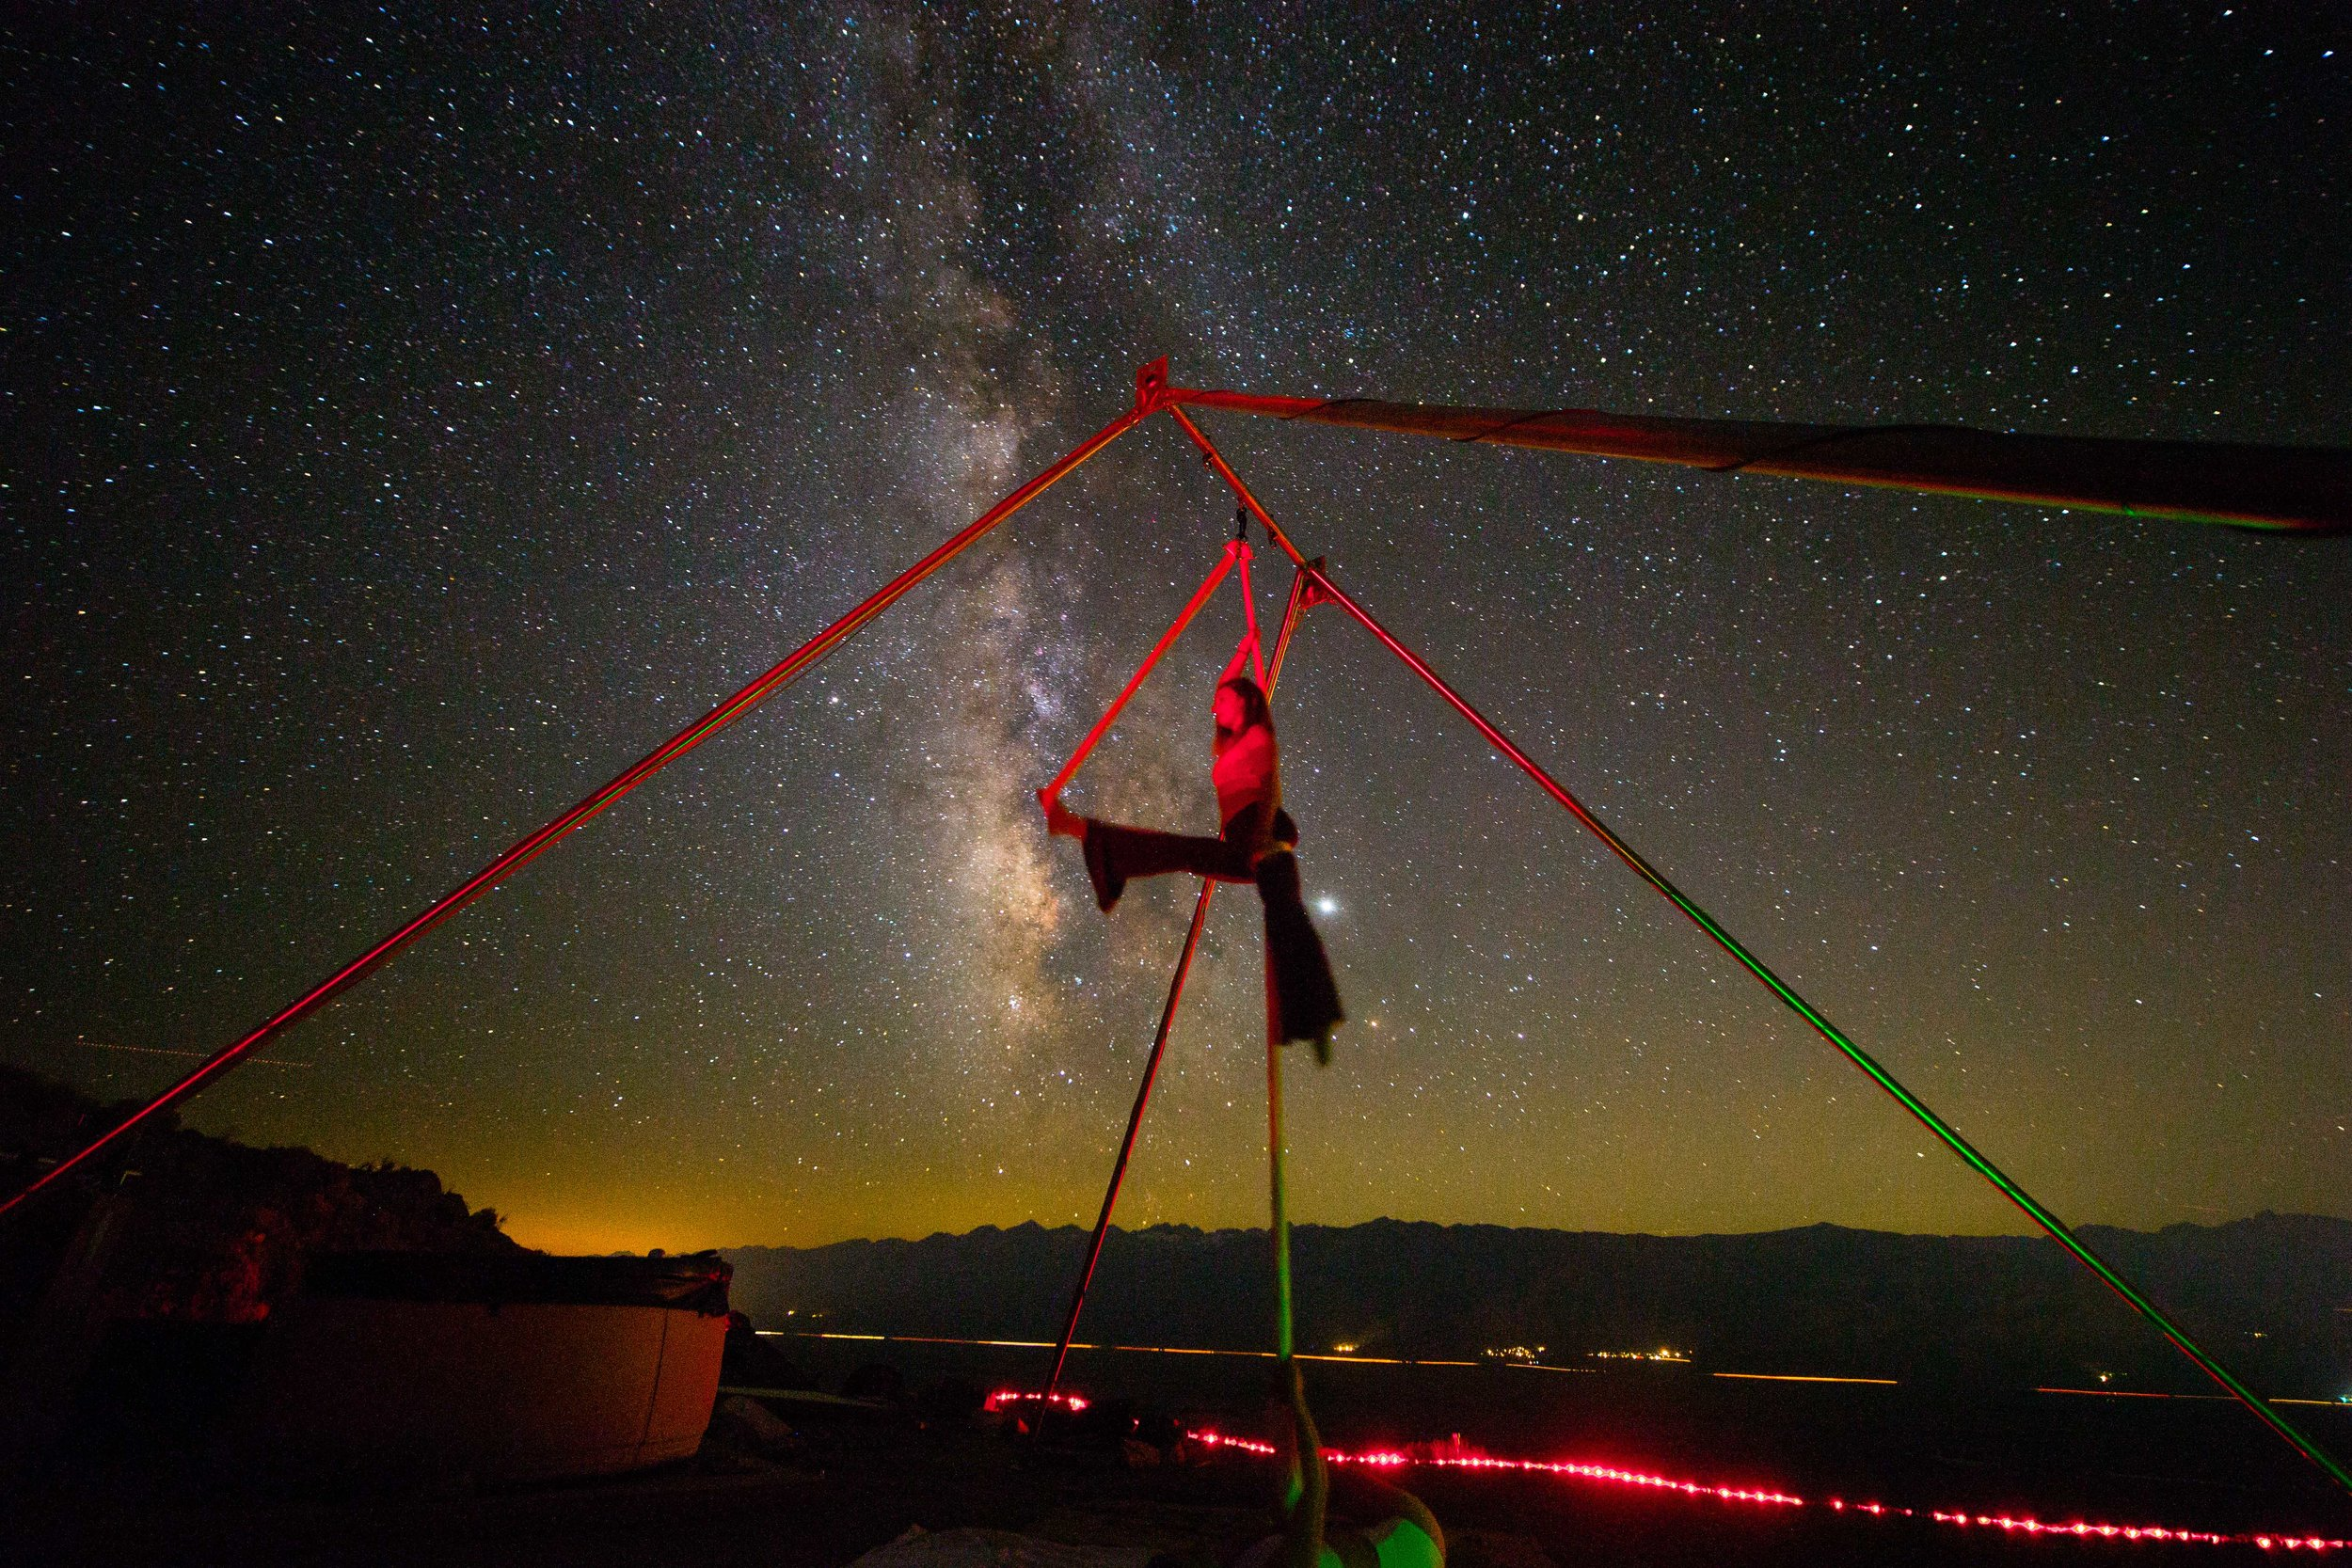 Come and get your silks on under the stars!